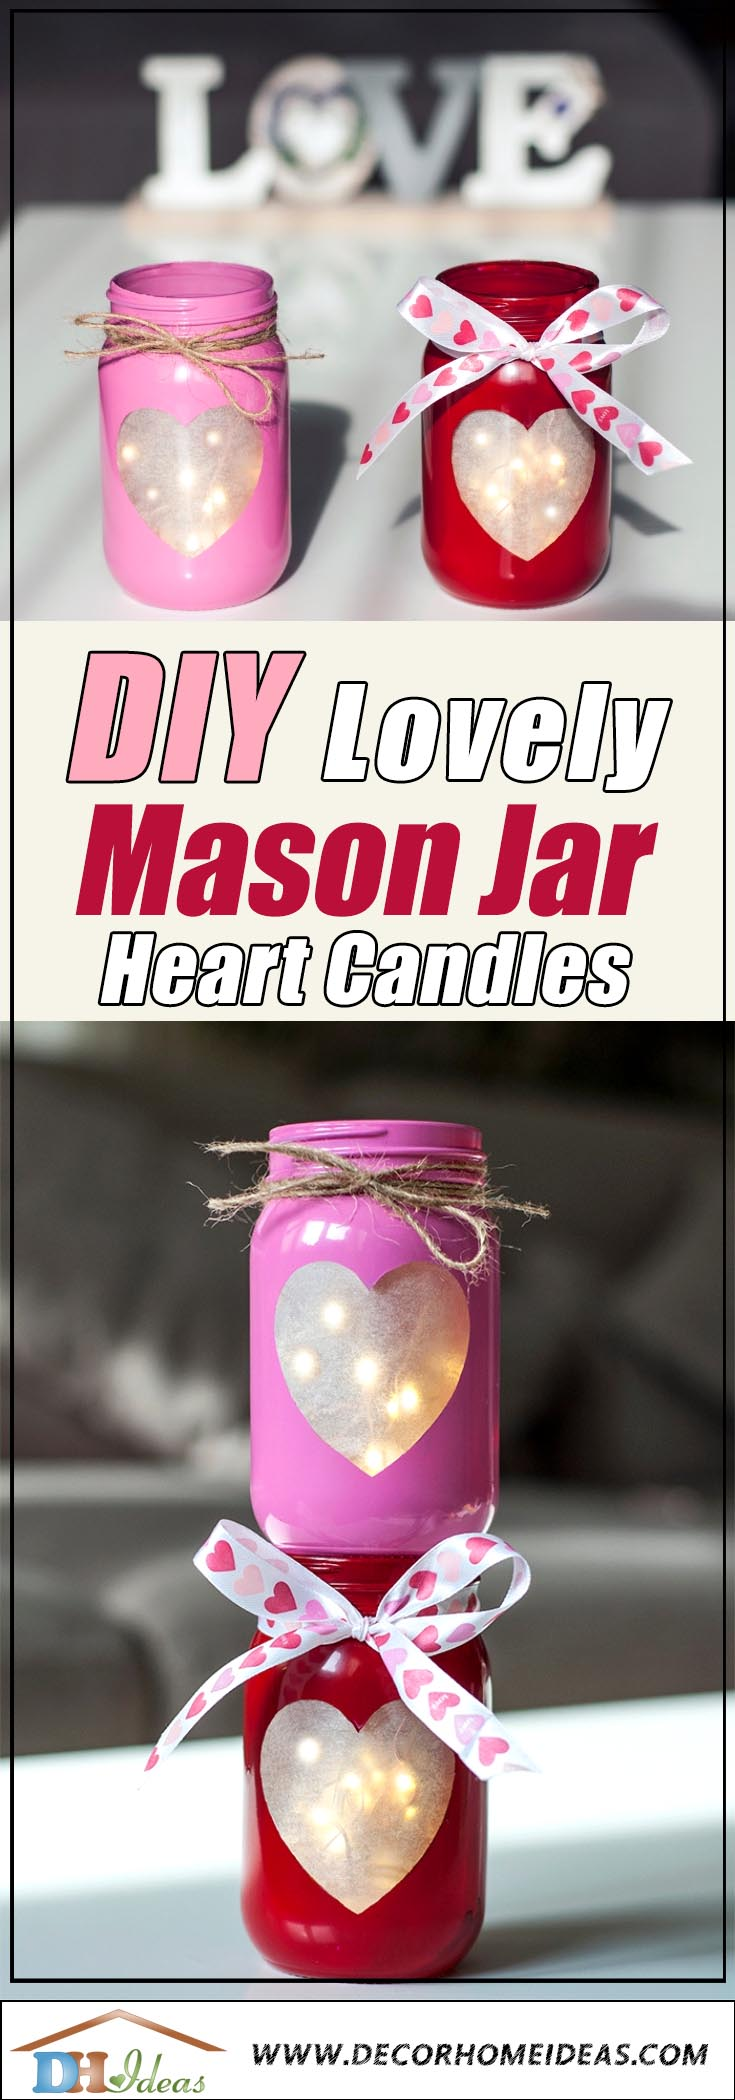 Valentine's Day DIY Mason Jar Heart Candles #diy #masonjar #valentinesday #decorhomeideas